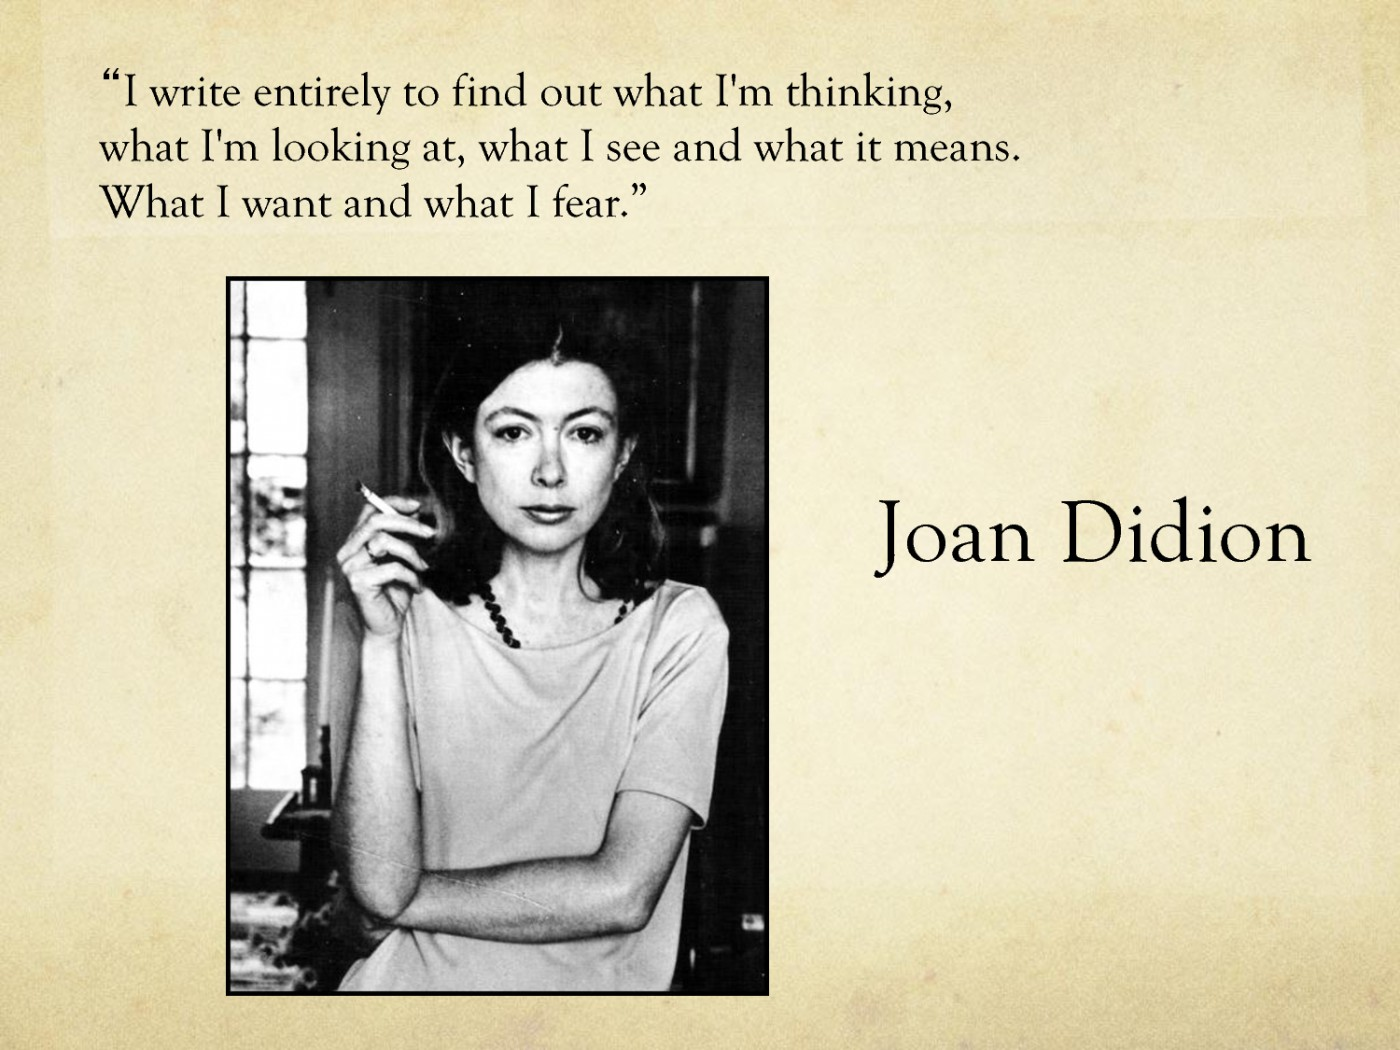 008 Essay Example Joan Didion Singular Essays Collections On Santa Ana Winds Amazon 1400